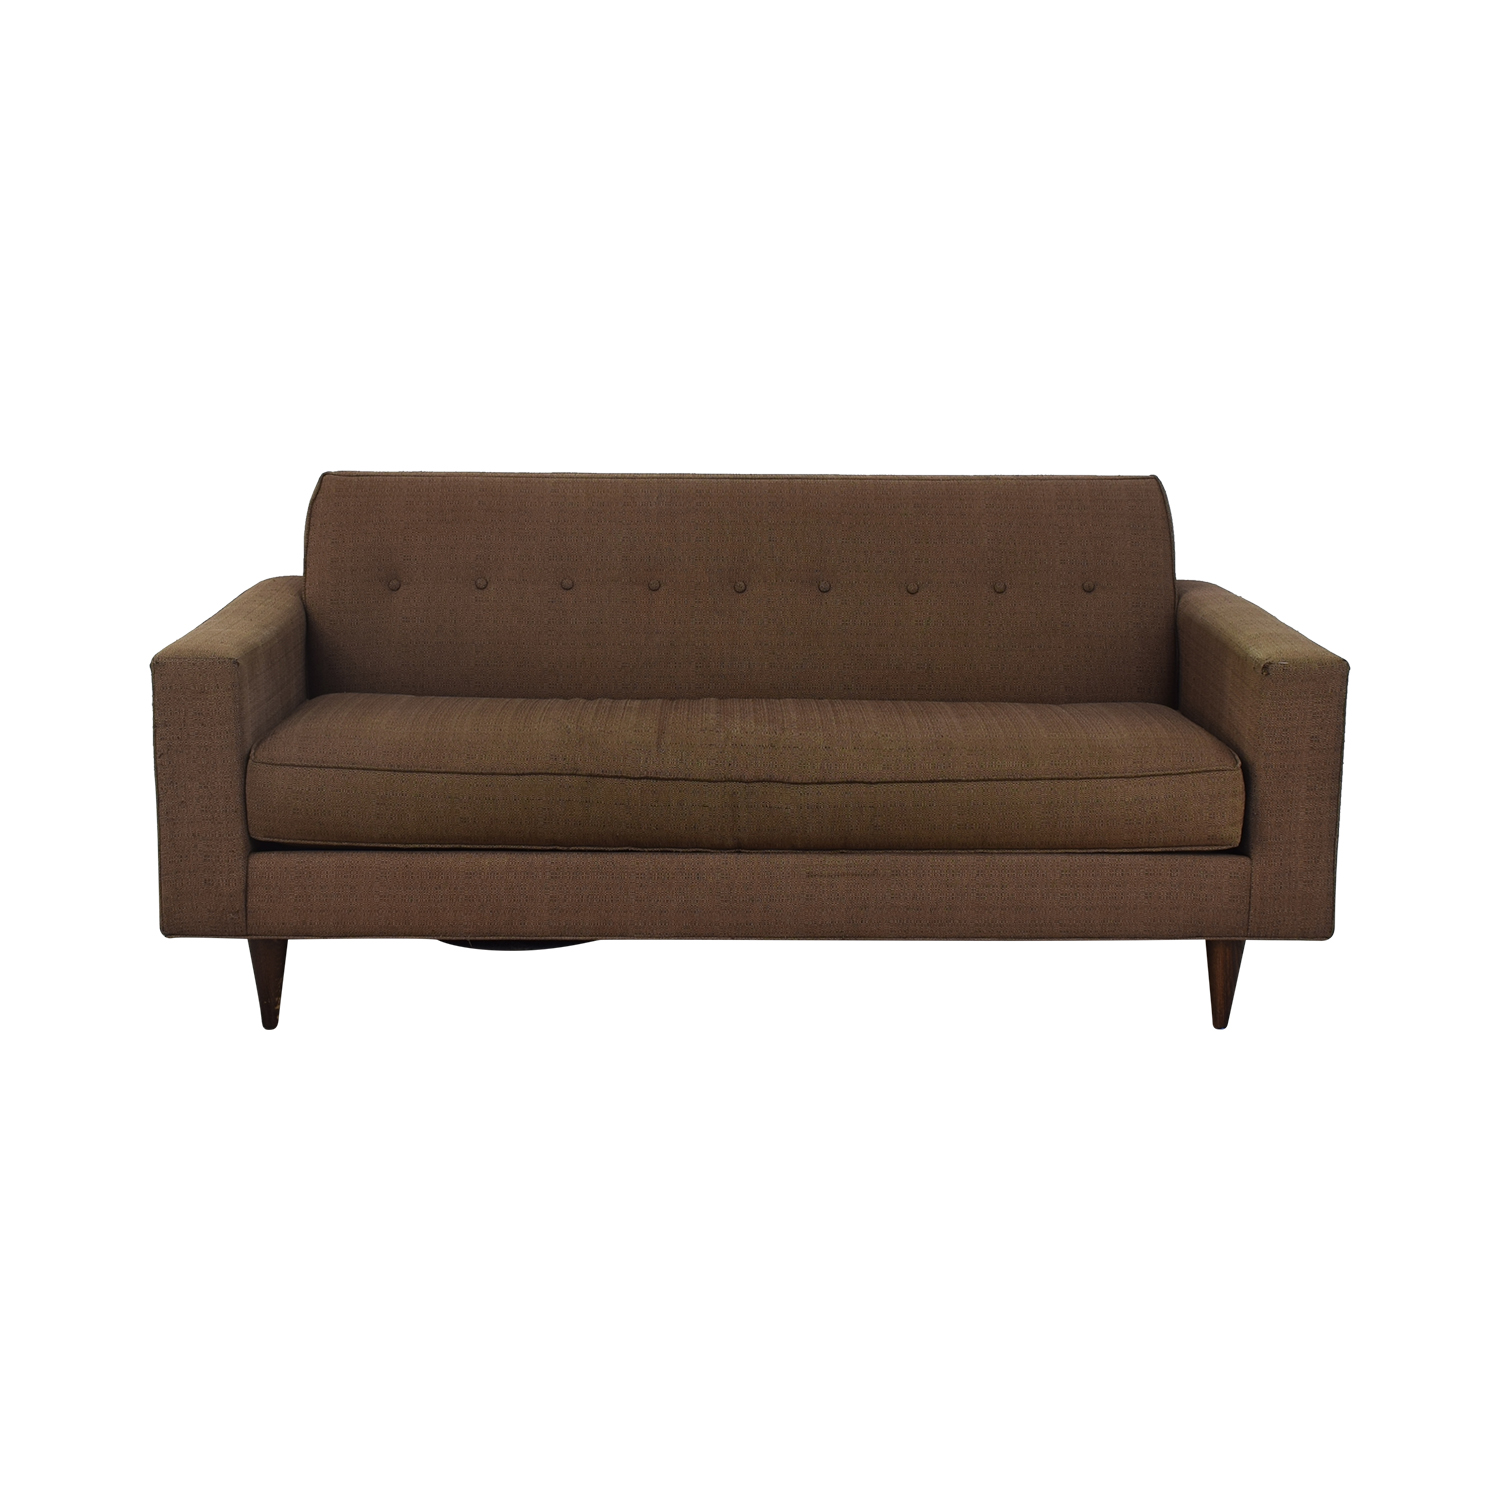 Younger Furniture Younger + Co Michael Apartment Sofa price